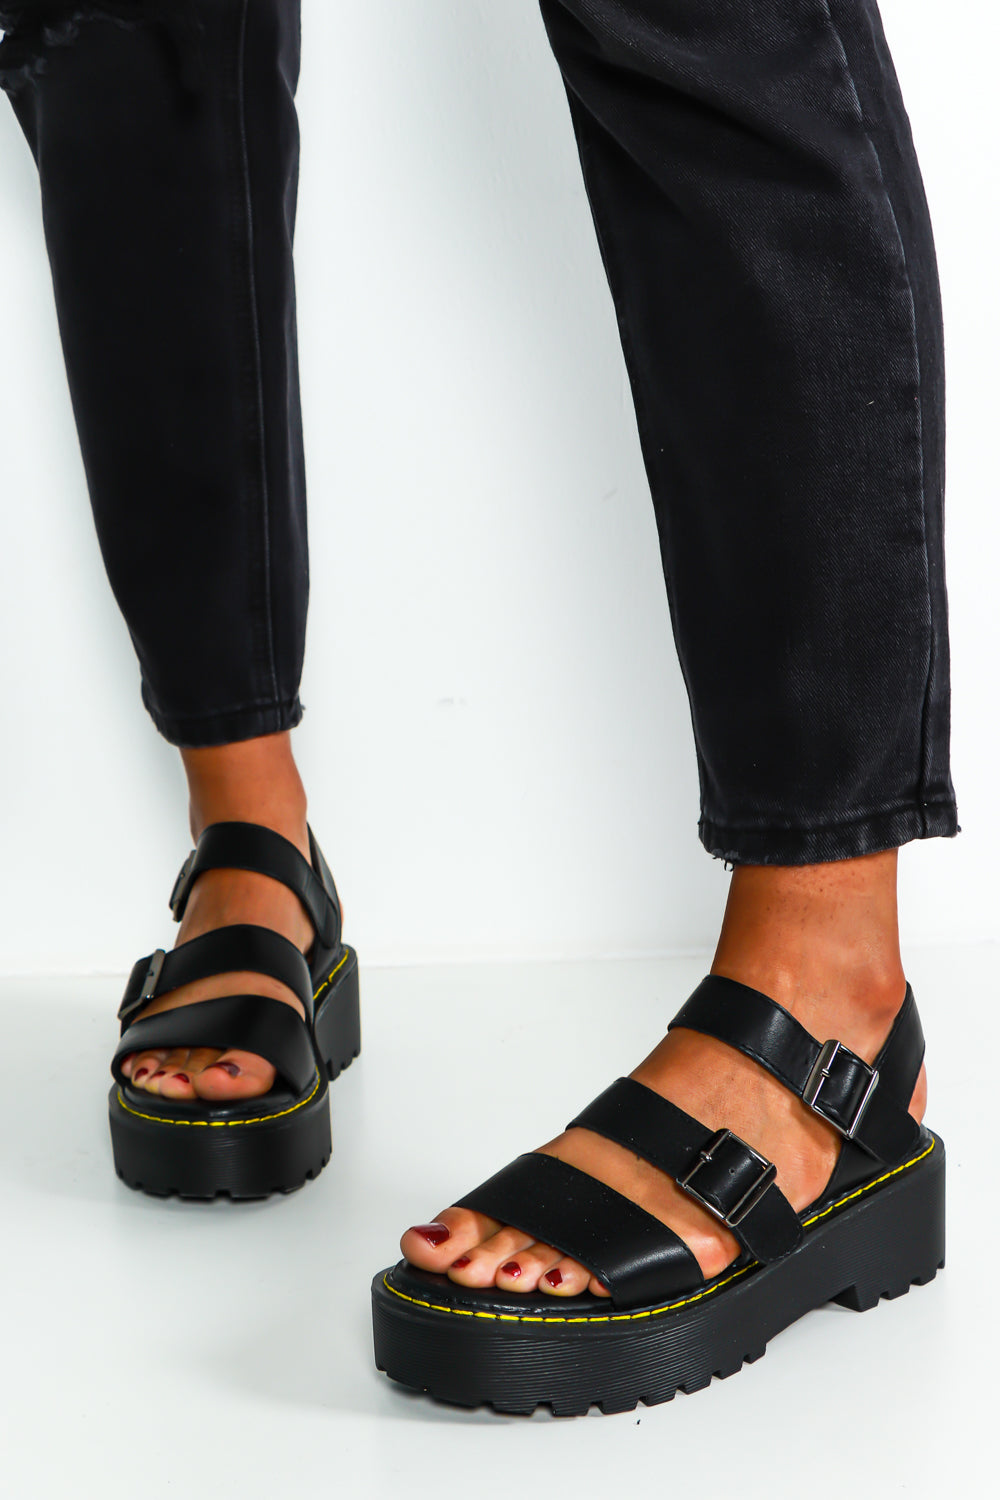 Step Aside - Sandals In BLACK